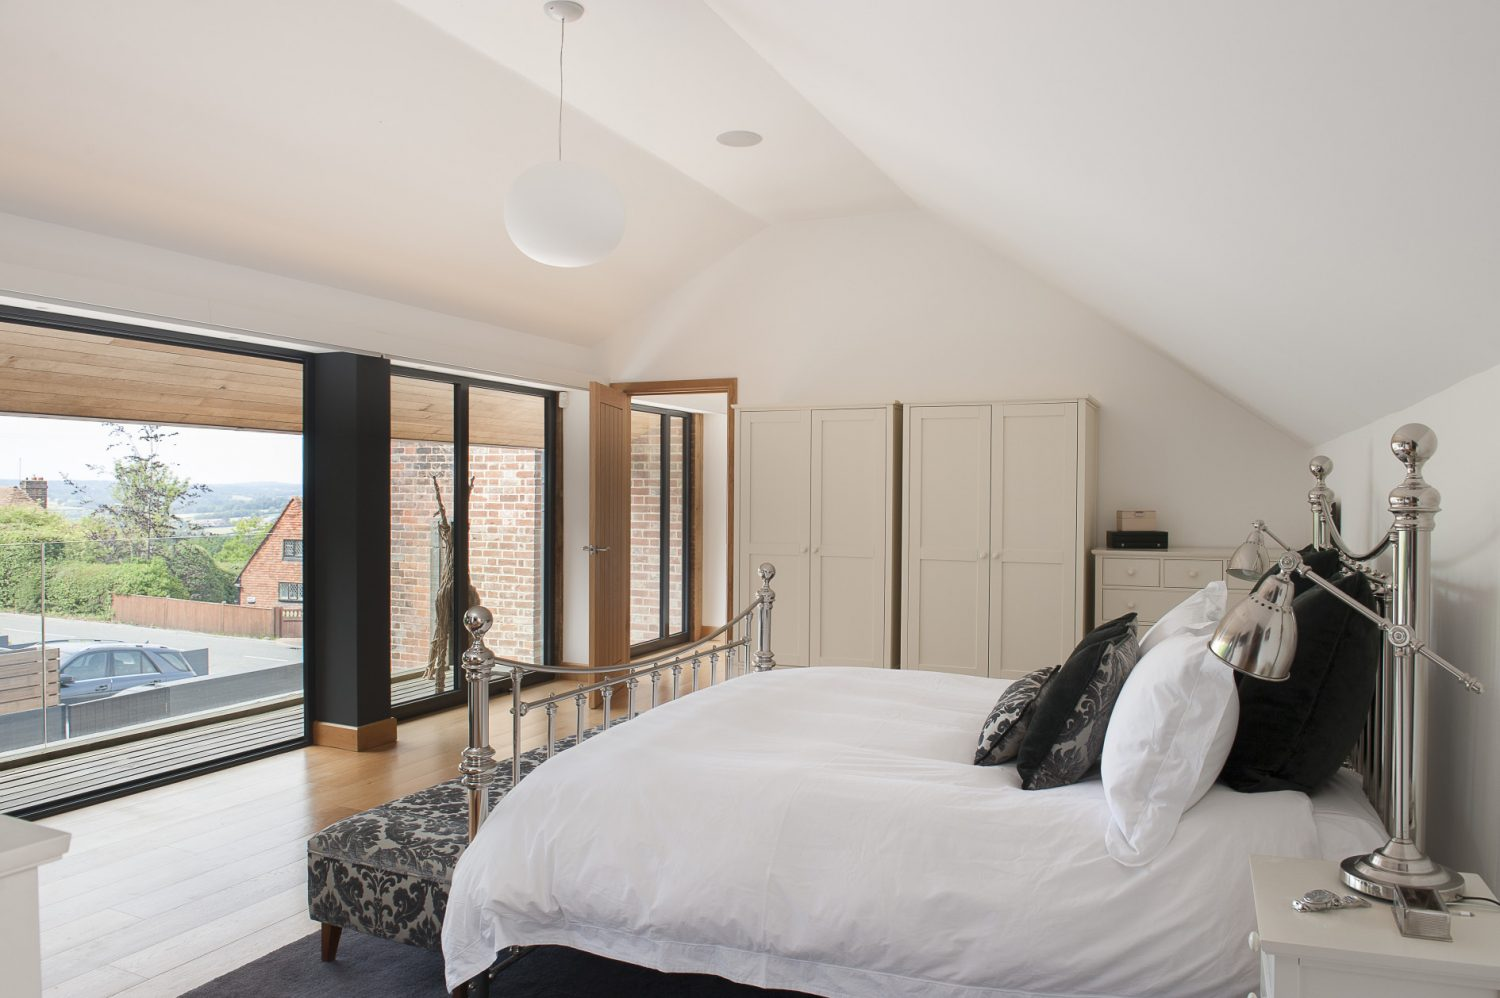 The wall of bi-folding doors is echoed upstairs in the master bedroom directly above the kitchen where they open out onto a decked balcony and more Lloyd Loom surrounded by a plate glass balustrade. The polished nickel bed is from Feather & Black in Tunbridge Wells while above it hangs a wonderful glass Flos Glow Ball light which can be dimmed to look like the moon